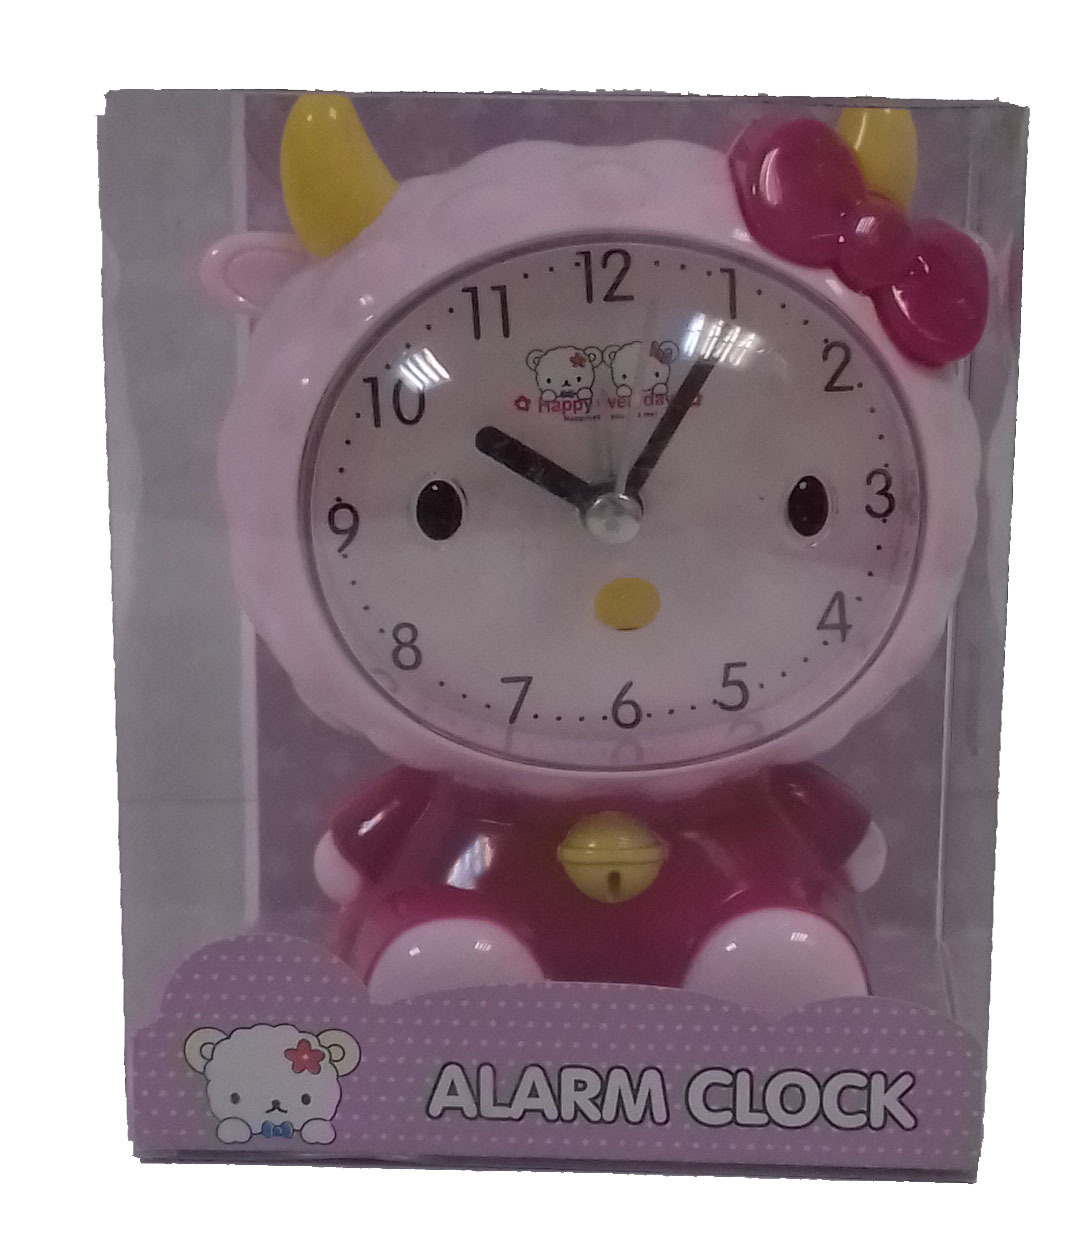 Будильник ALARM CLOCK CARTOON. (Барашка)